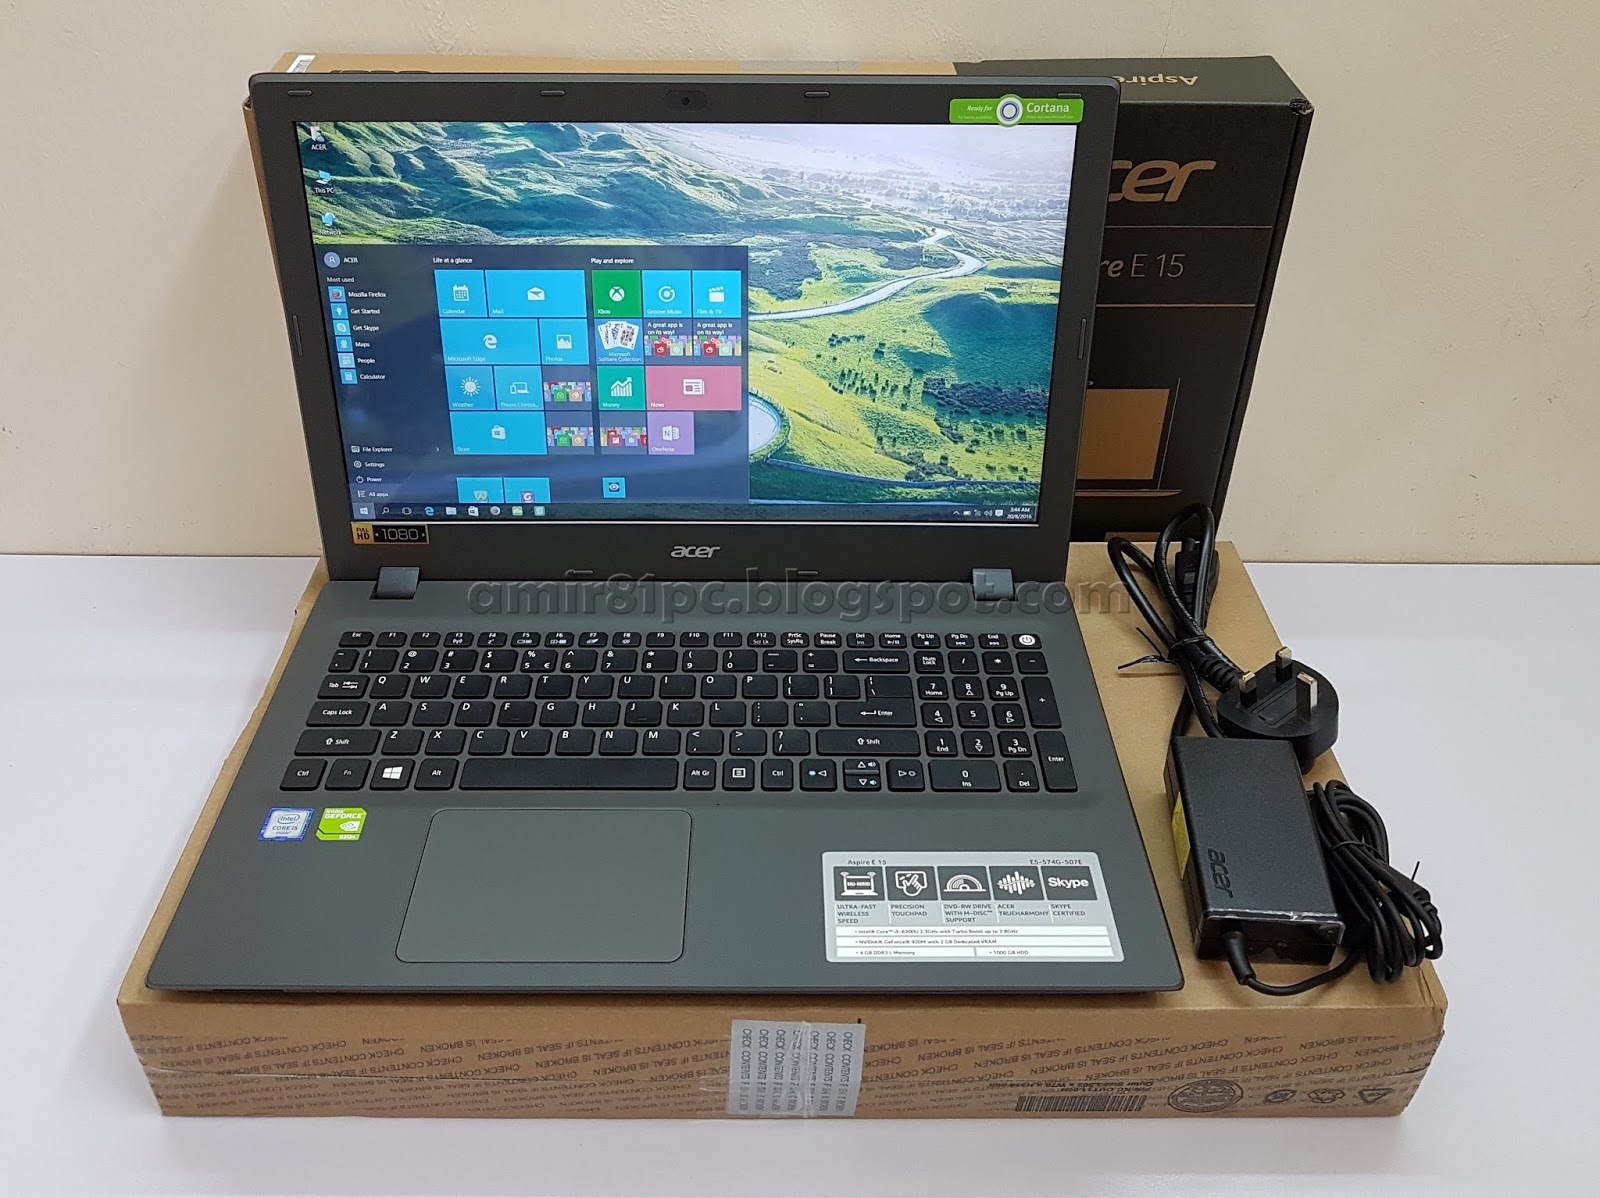 2019 Ram Hd >> Three A Tech Computer Sales and Services: NEW Laptop Acer Aspire E5-574G / 6th Gen Core i5 / 2GB ...